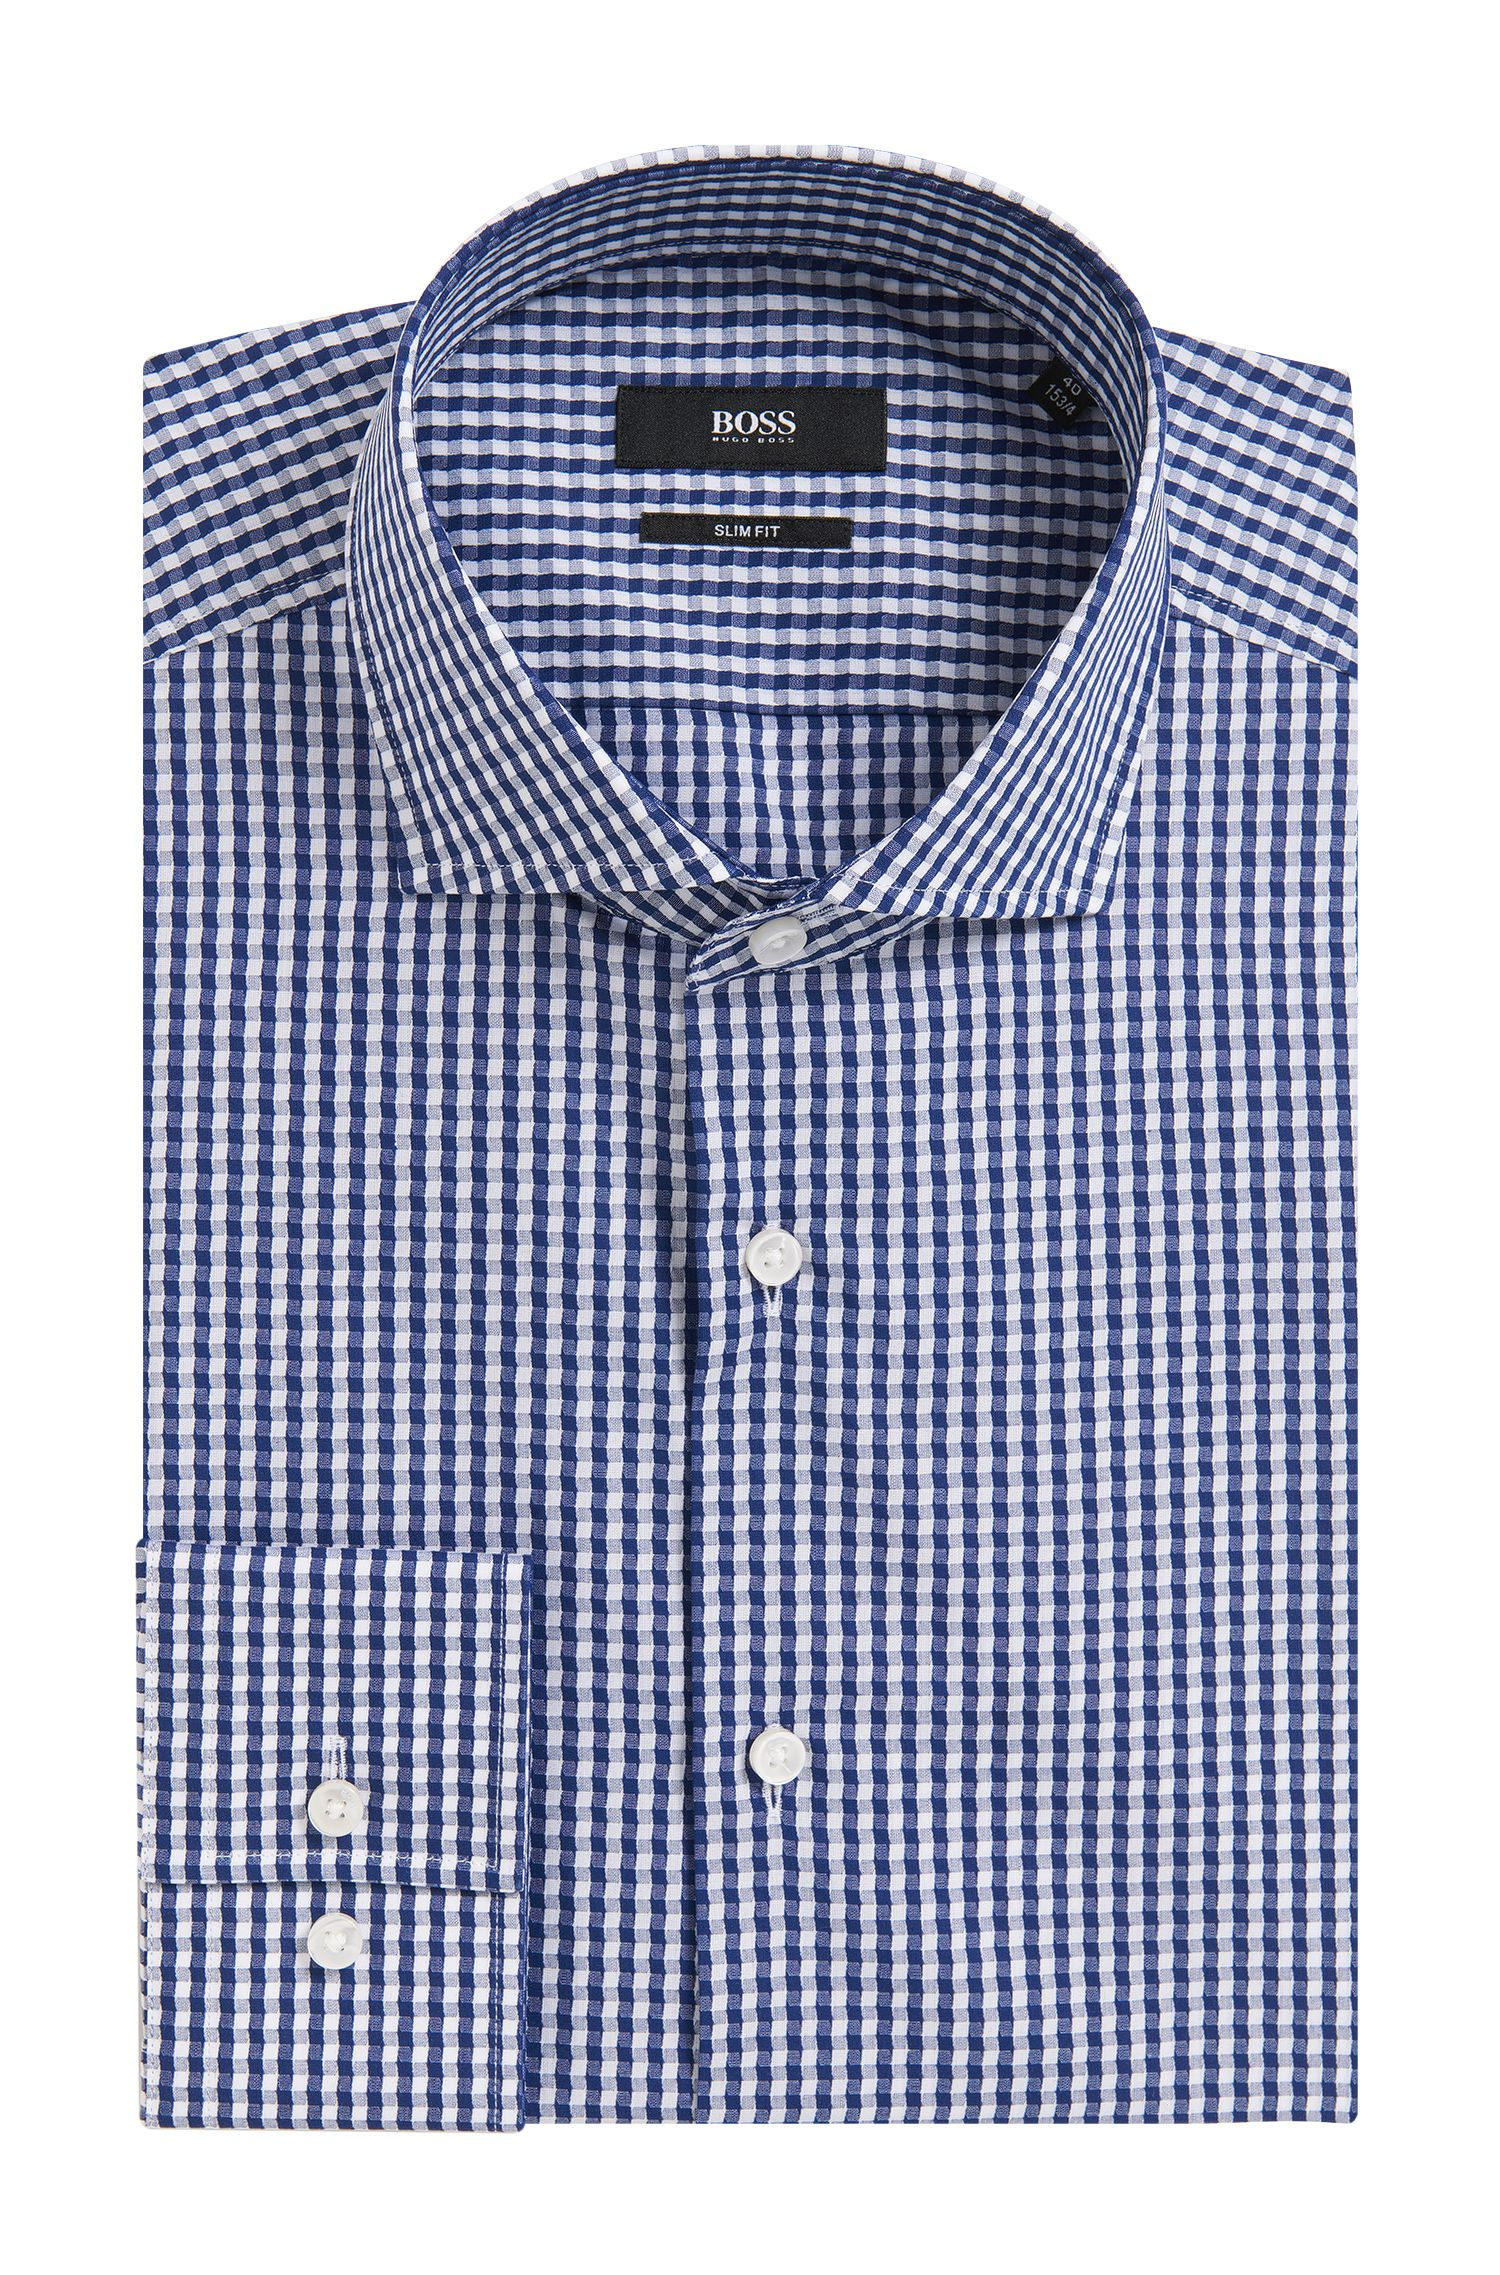 Irregular Gingham Cotton Dress Shirt, Slim Fit | Jason, Dark Blue